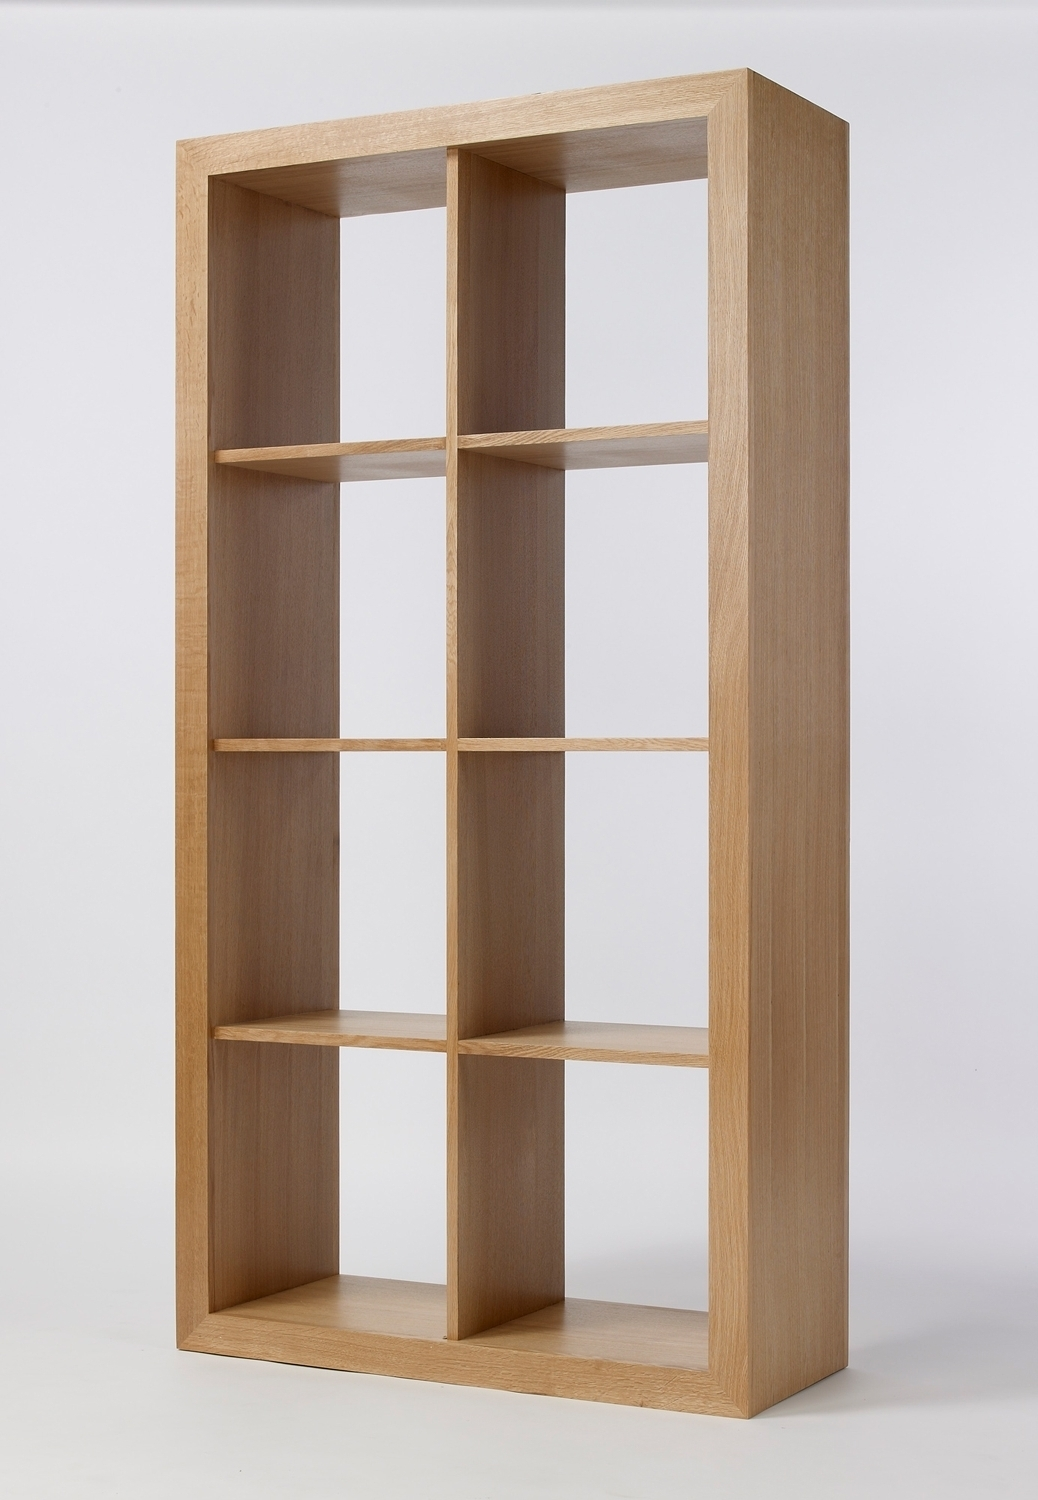 Well Liked Contemporary Oak Shelving Units Within Contemporary Oak Shelving Units • Shelves (View 15 of 15)